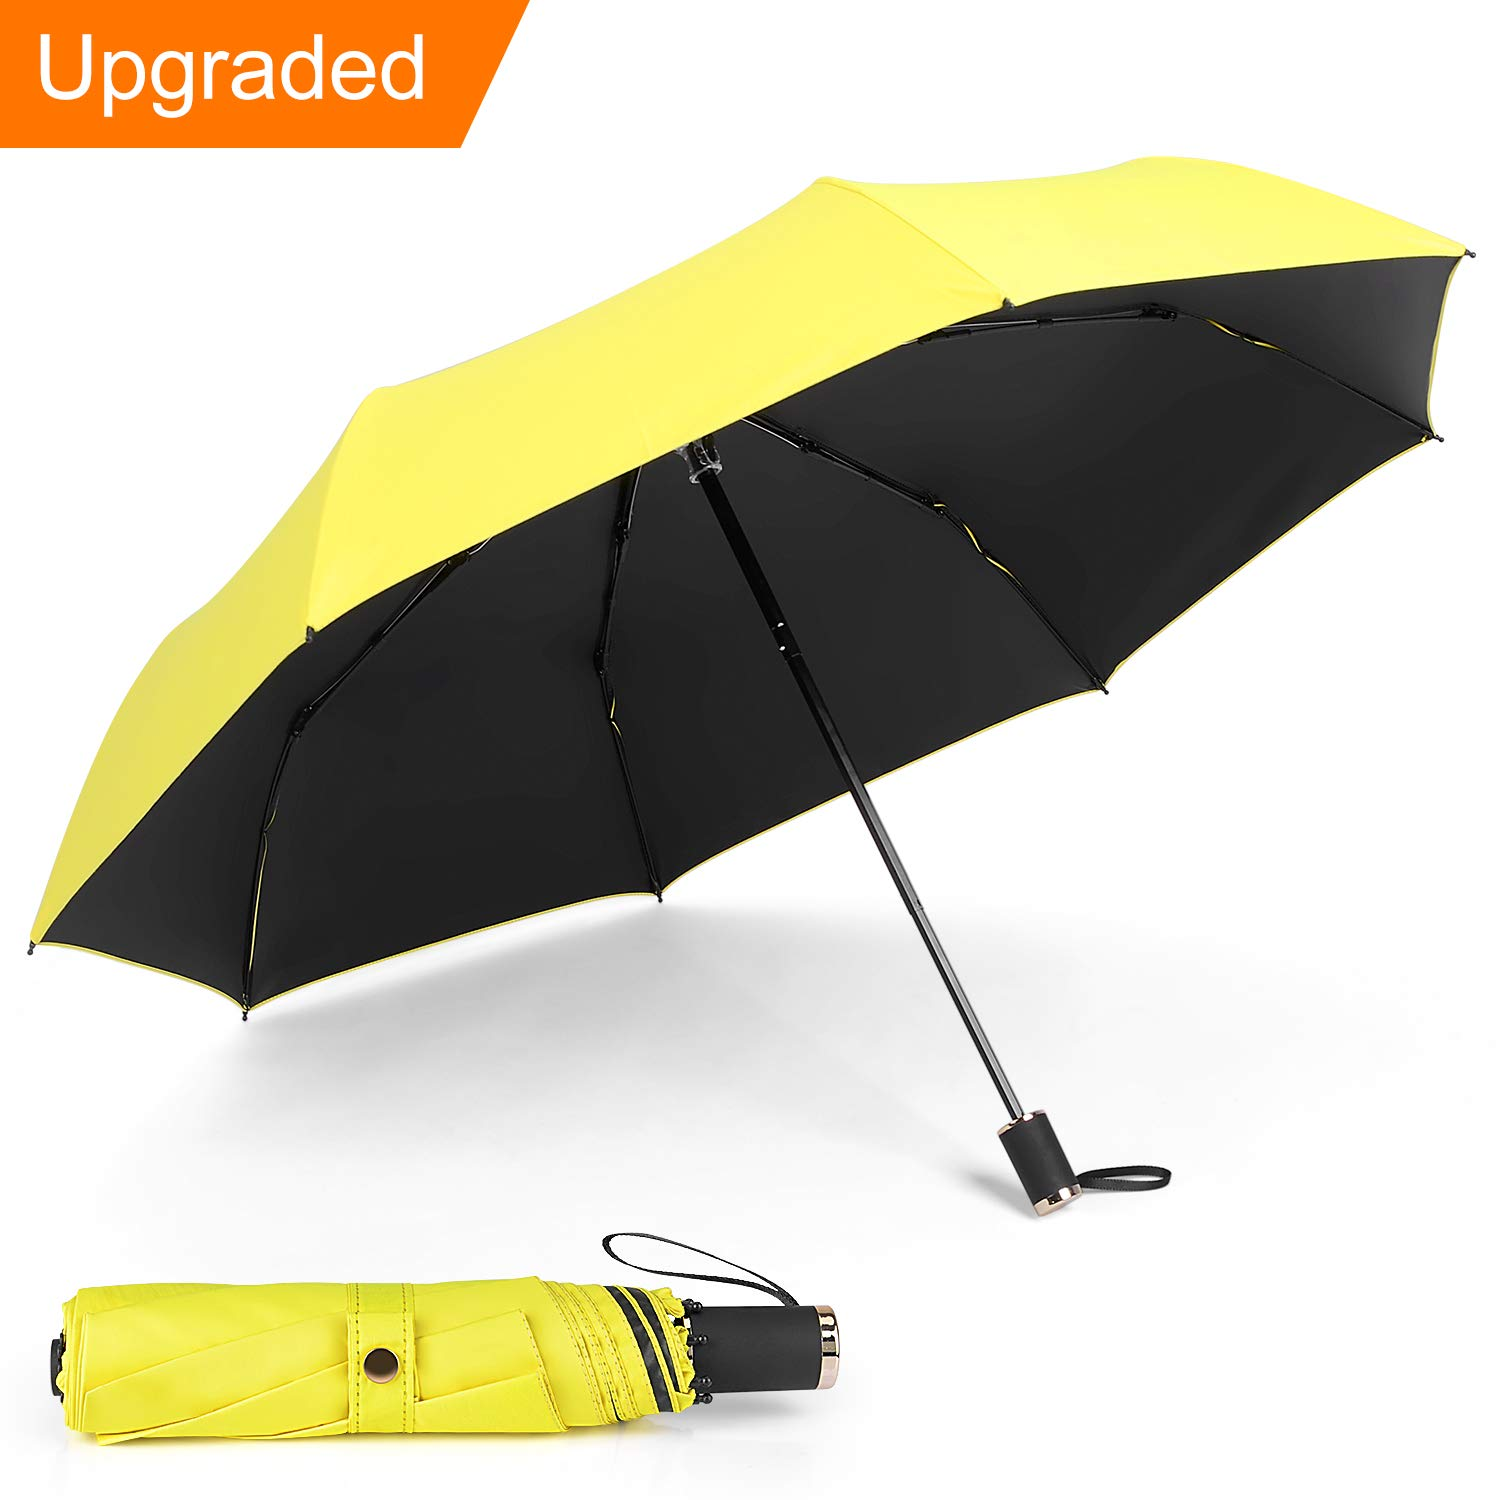 IEOKE Compact Umbrella, Travel Umbrella Windproof Sun Umbrella With Sleeve Foldable Lightweight for easy carry -8 Ribs(Yellow)